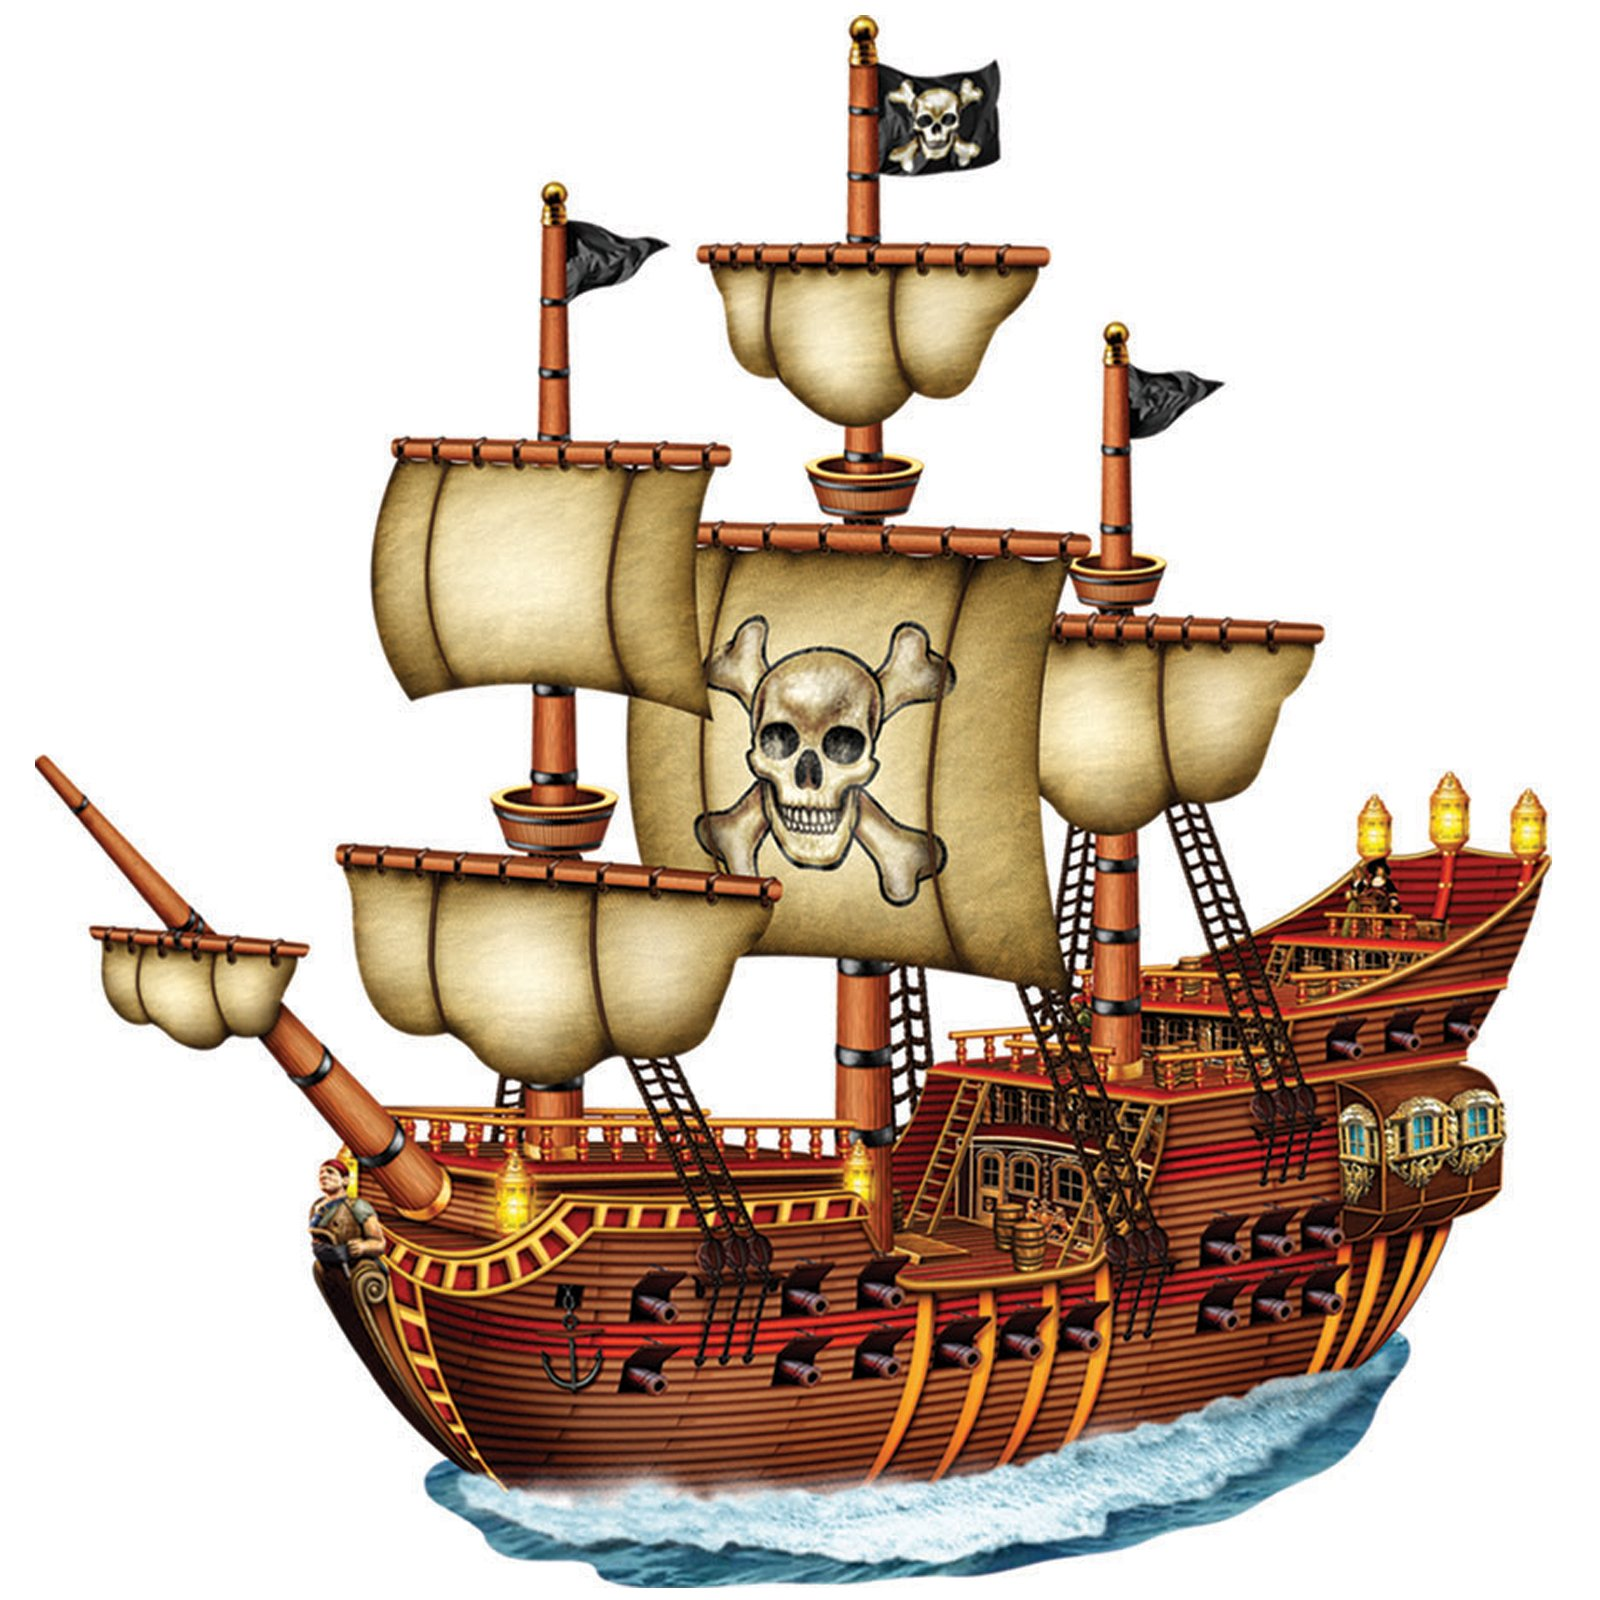 Free Pirate Ship Clipart, Download Free Clip Art, Free Clip Art on.